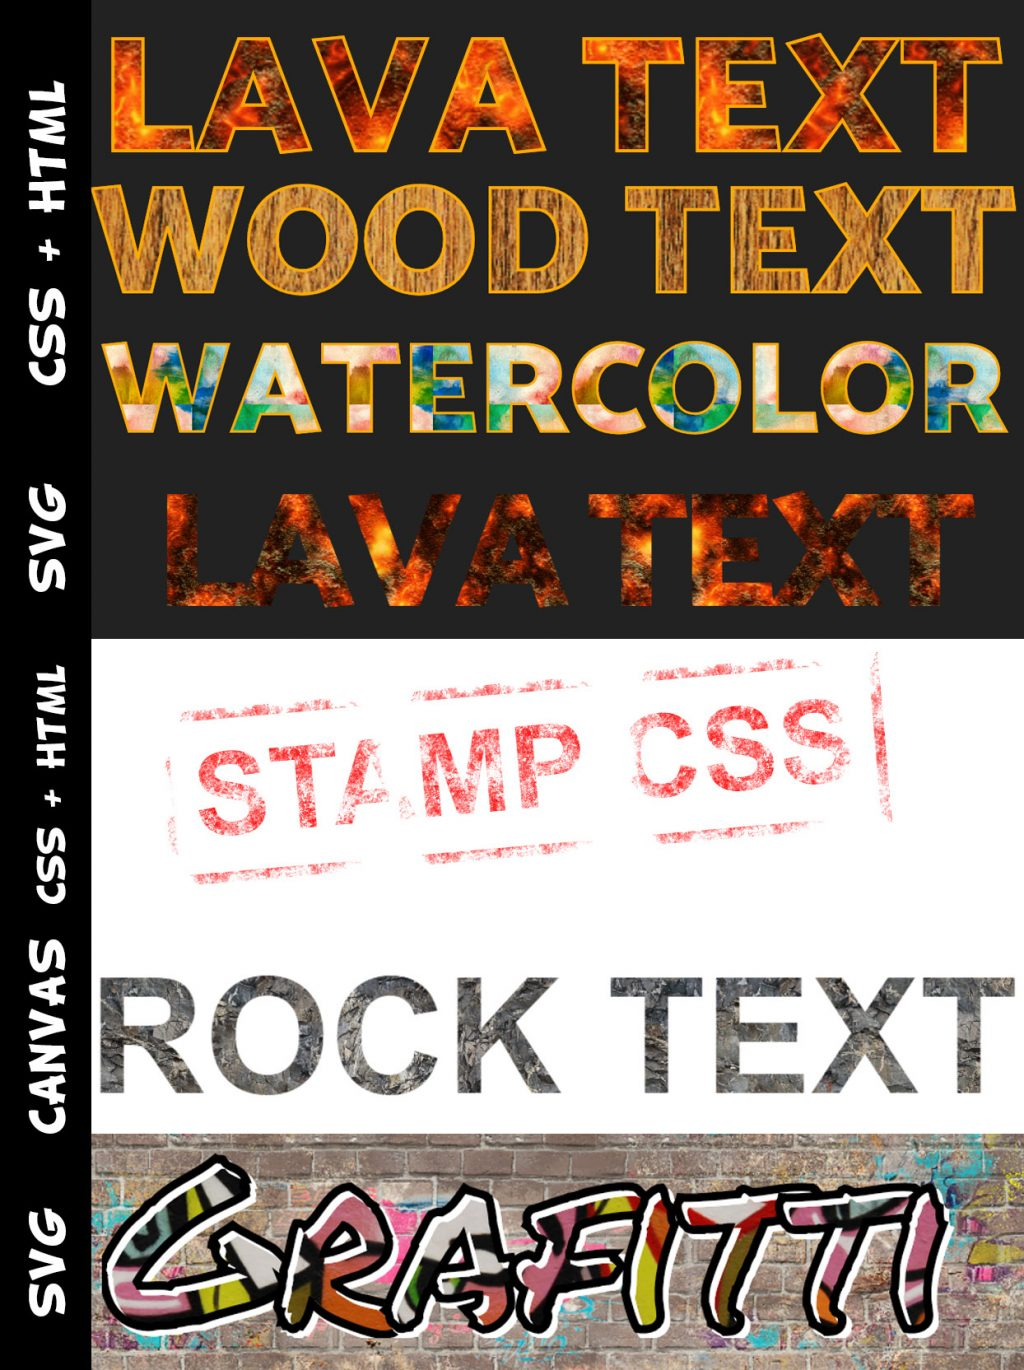 Applying An Image Texture On Text With HTML And CSS - Coding